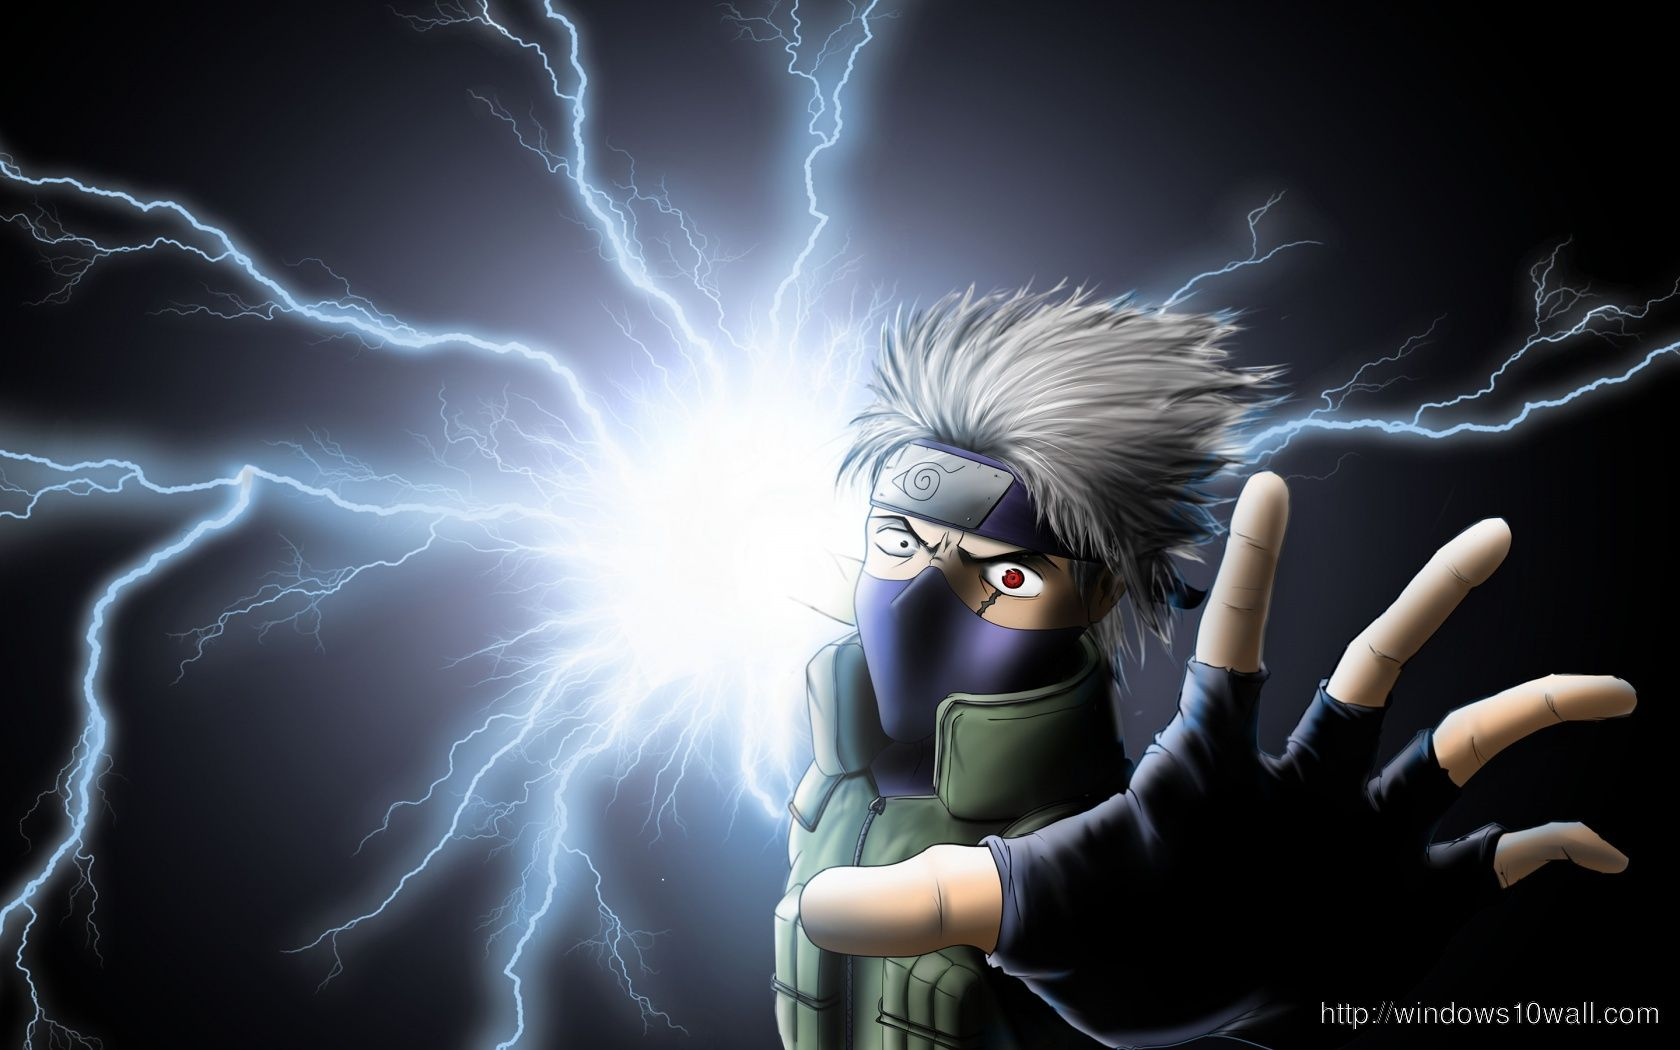 Good Wallpaper Naruto Windows 10 - 43ecbafe77f93e13eb4fb1f42f12f61c  Graphic.jpg